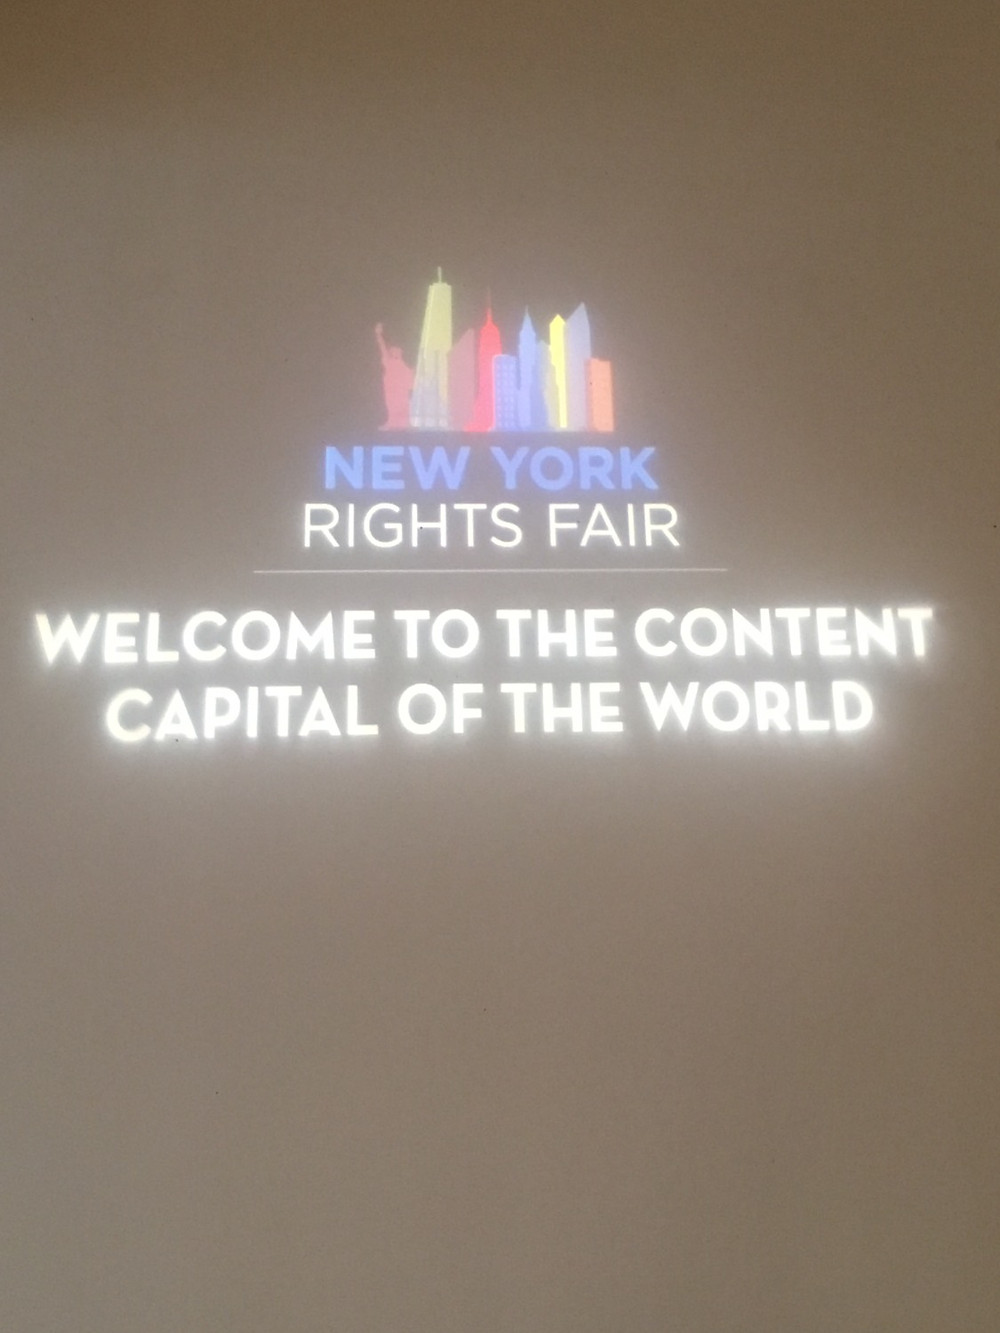 At the New York Rights Fair!